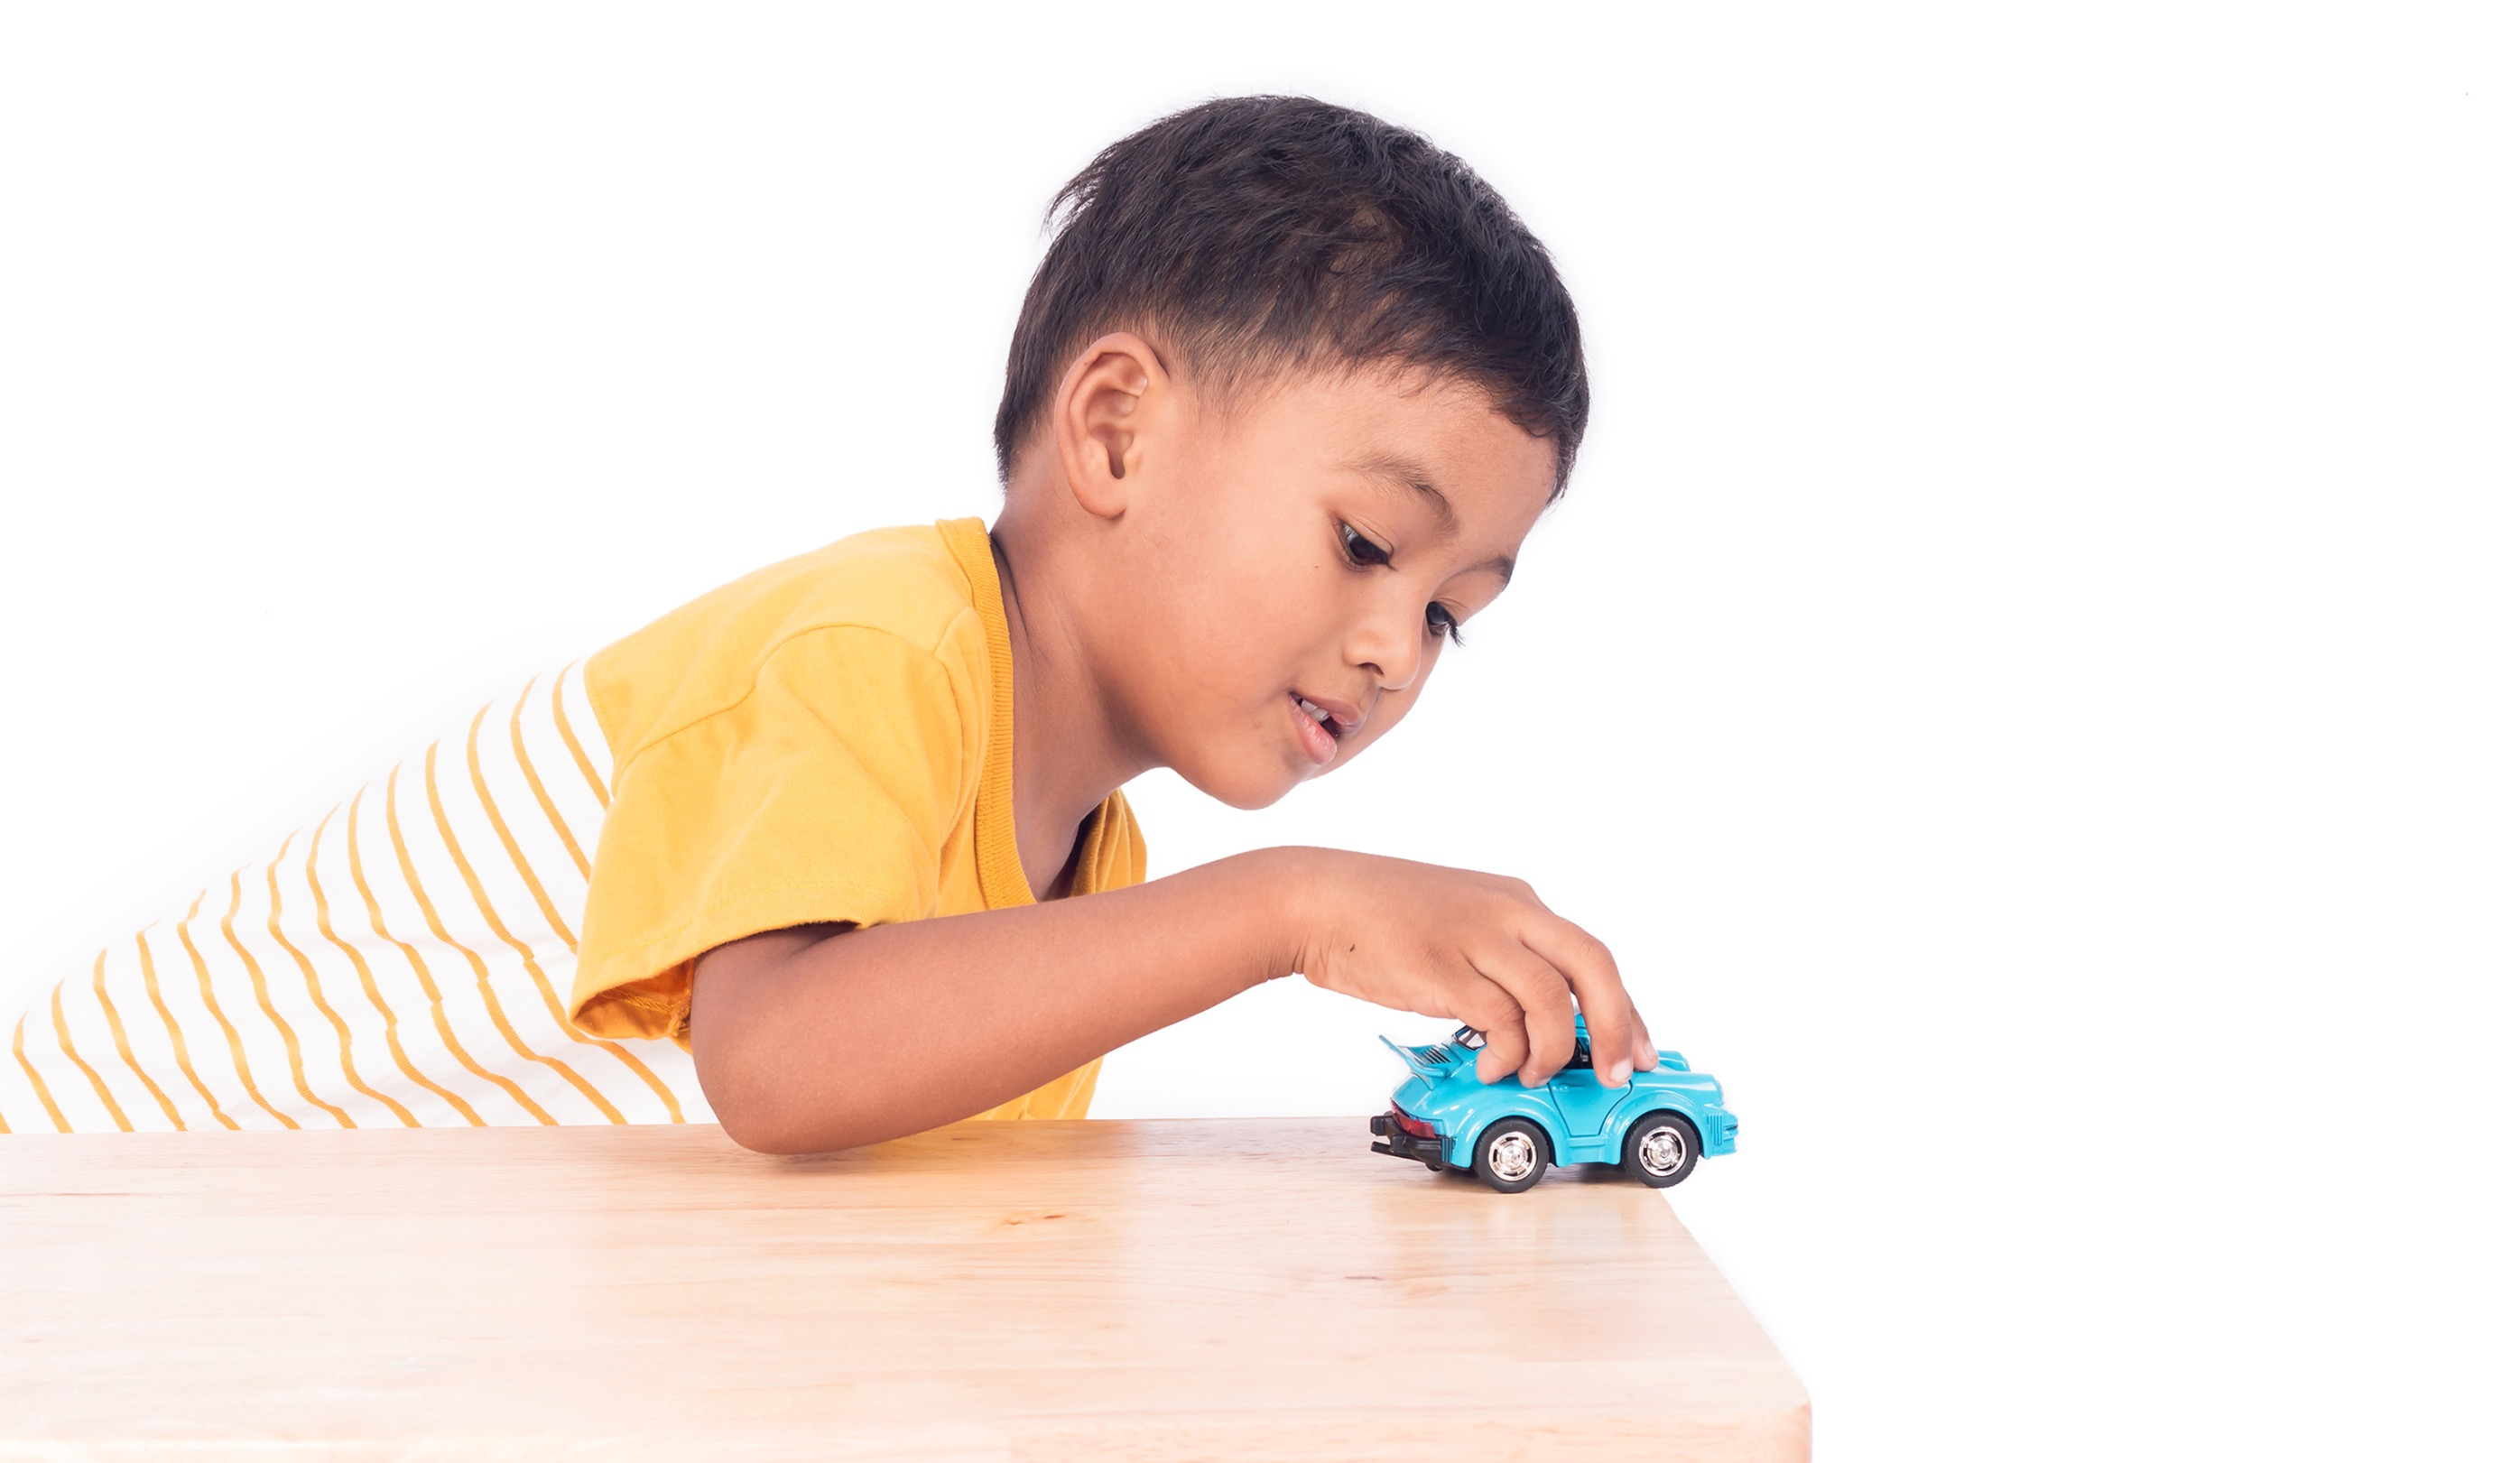 Child therapy with car on table